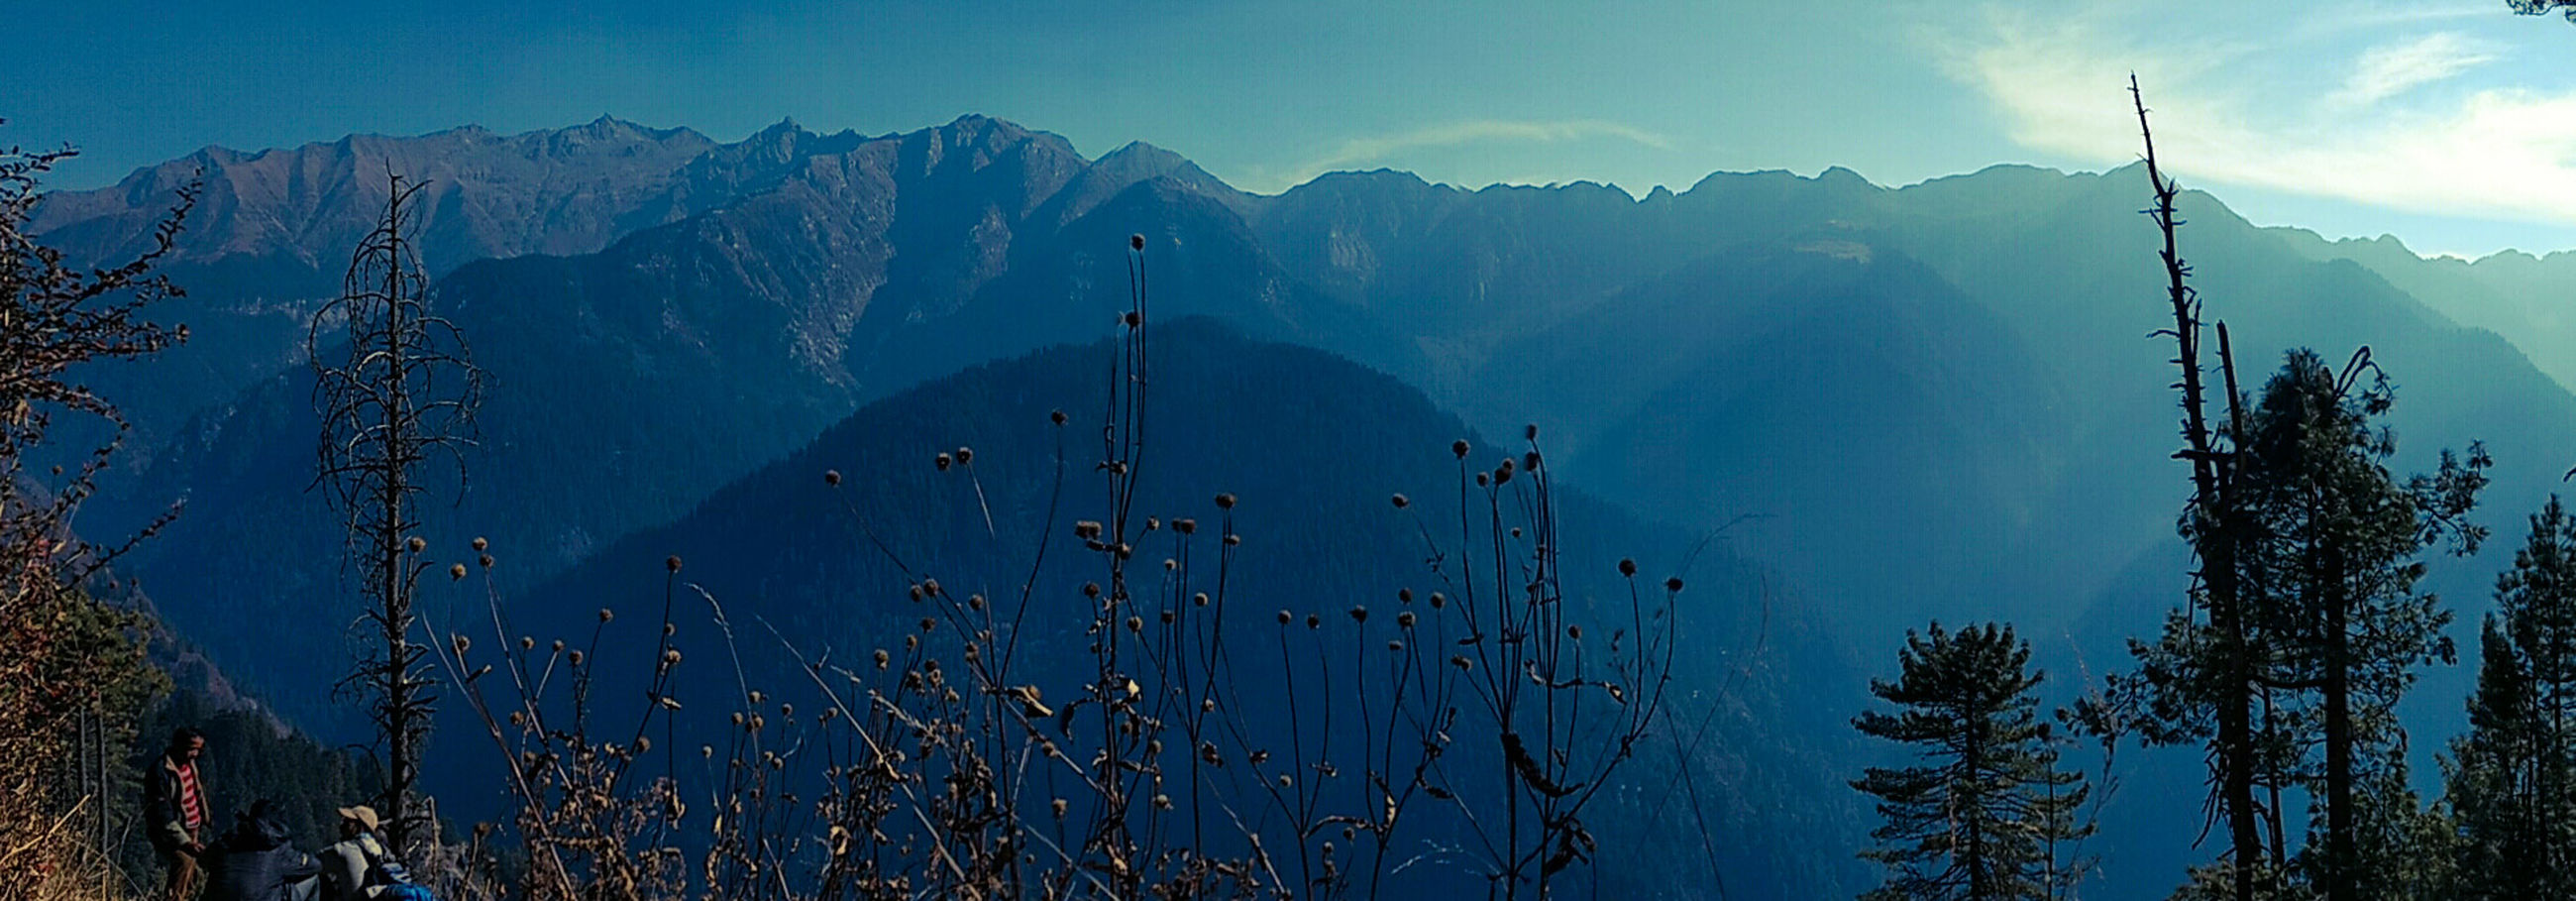 mountain, beauty in nature, scenics - nature, mountain range, tranquil scene, sky, tranquility, non-urban scene, nature, plant, tree, idyllic, no people, environment, day, outdoors, panoramic, landscape, remote, snowcapped mountain, formation, mountain peak